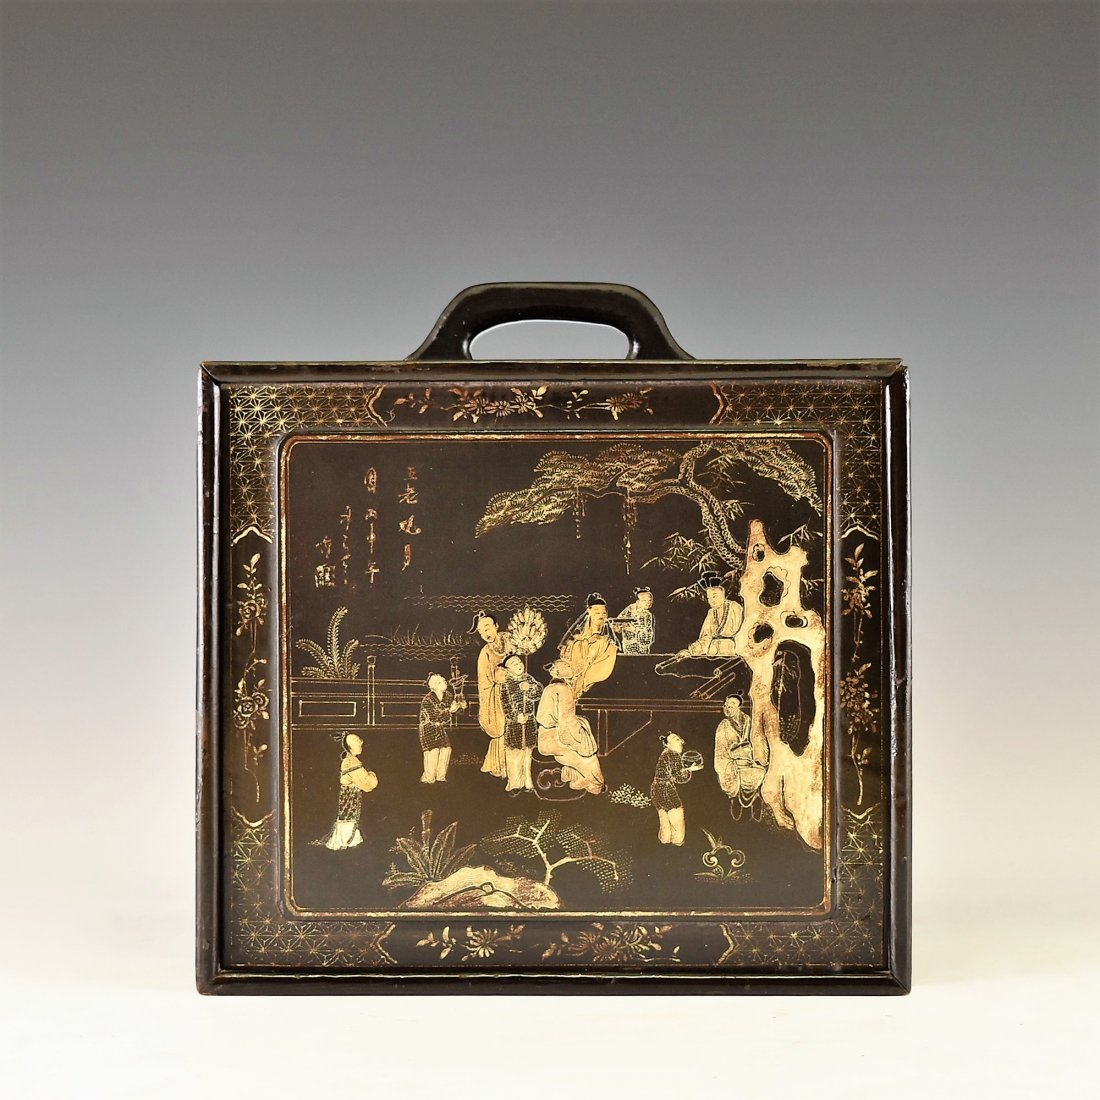 ANTIQUE CHINESE EBONY LACQUER BOX, 19TH C - 2